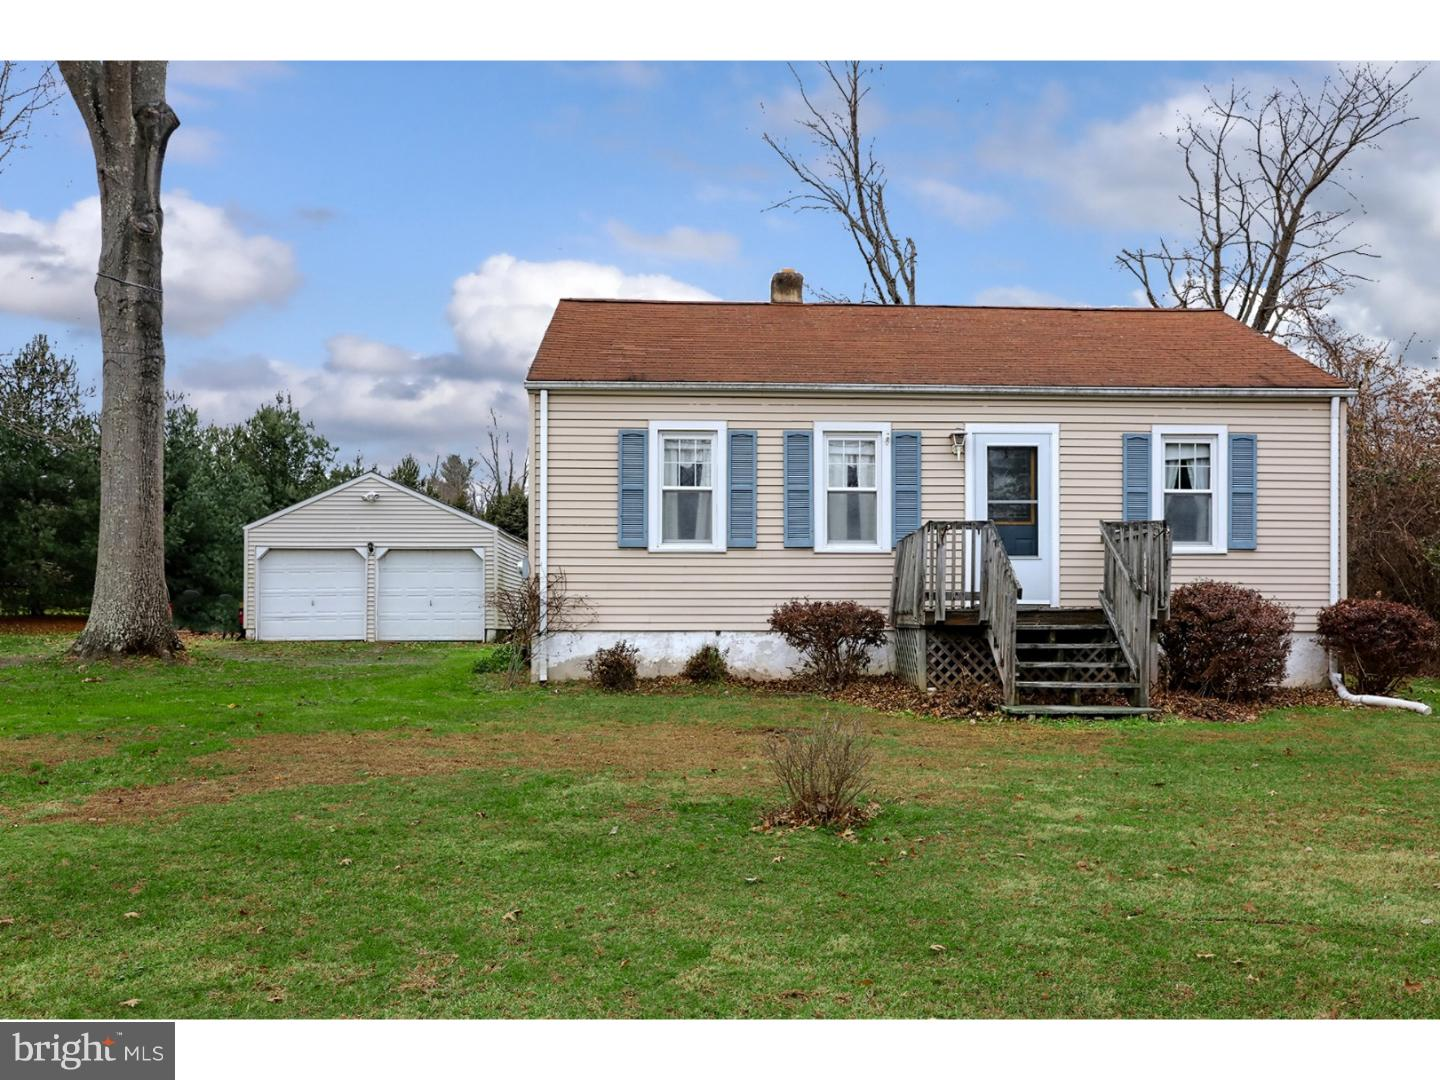 Property for Sale at 27 OLD WASH CROSS PENN Road Titusville, New Jersey 08560 United States